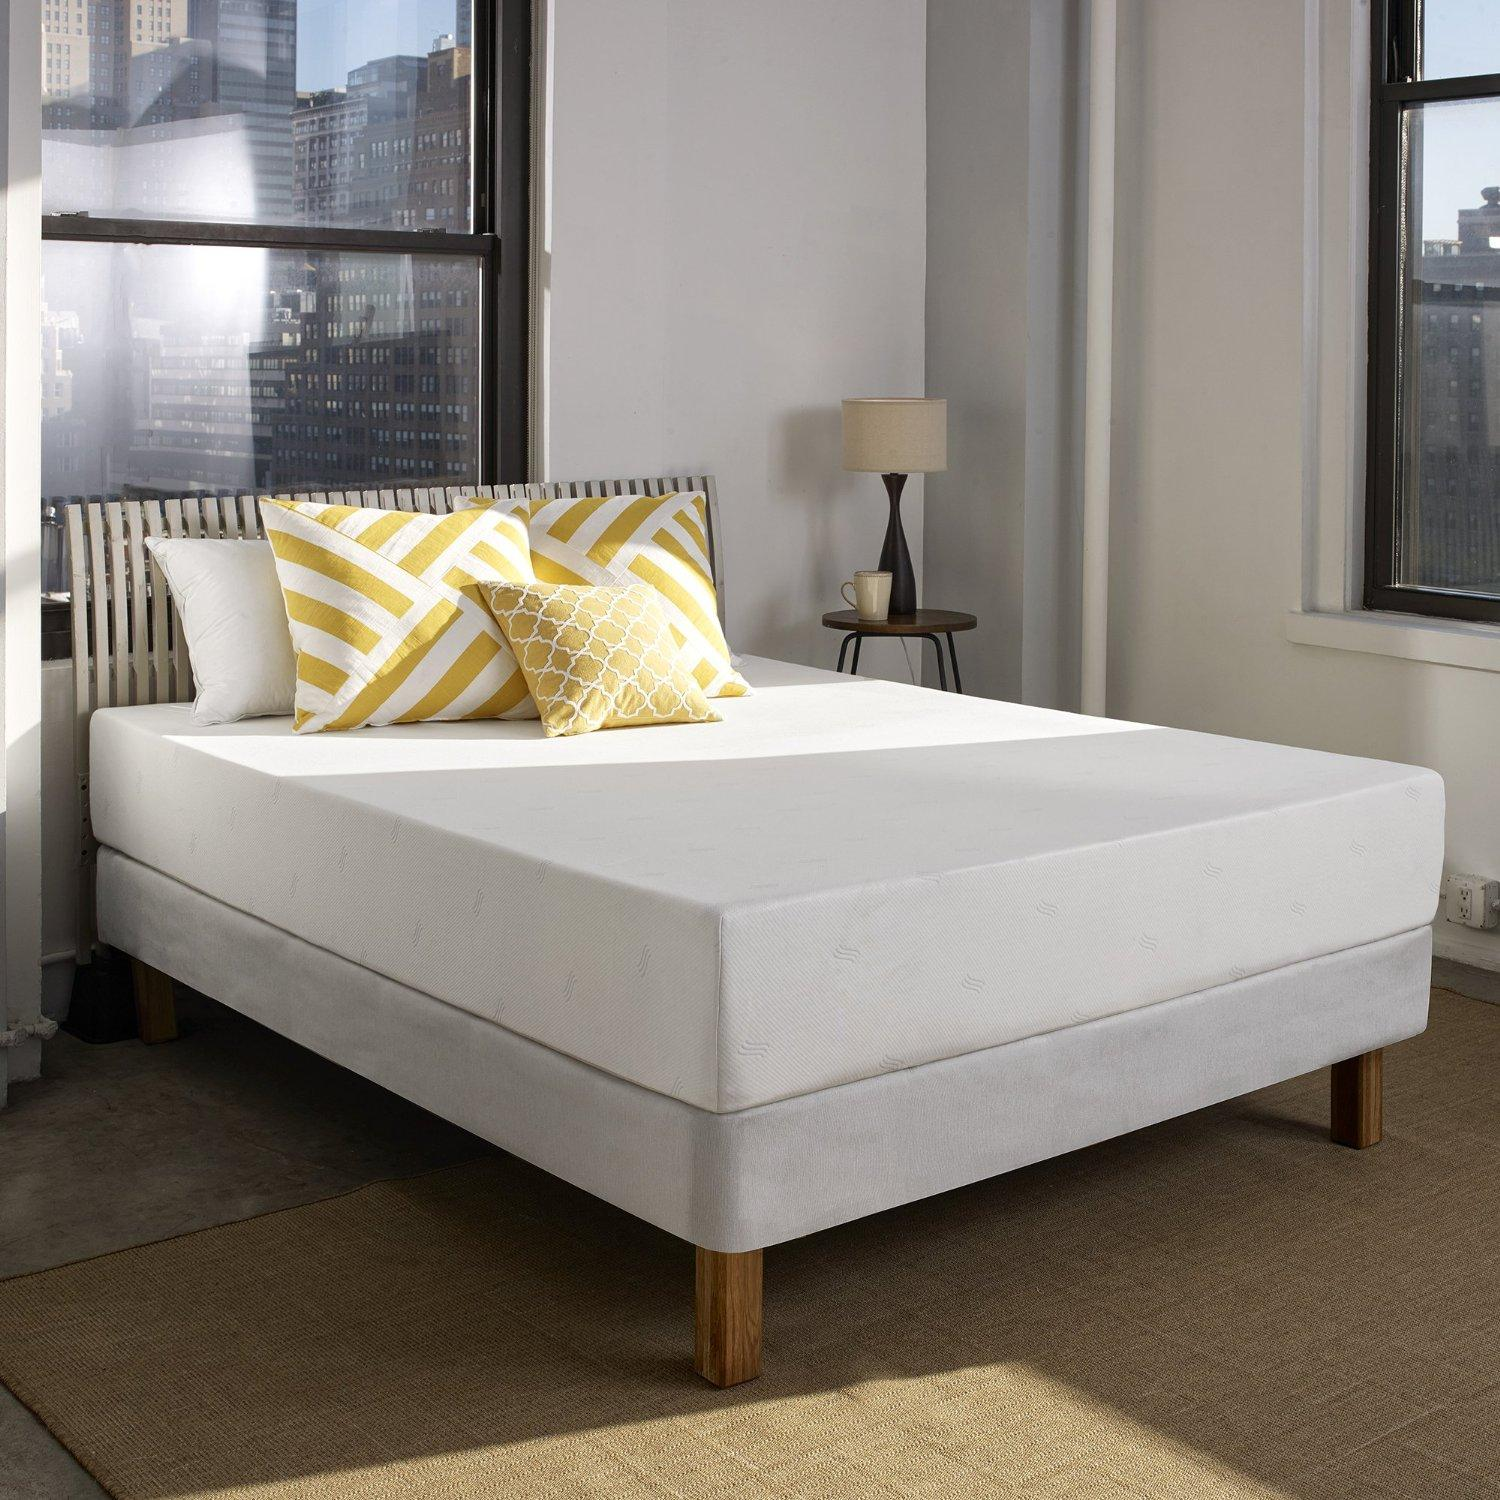 $283.55 Sleep Innovations Shea 10-inch Memory Foam Mattress, Twin